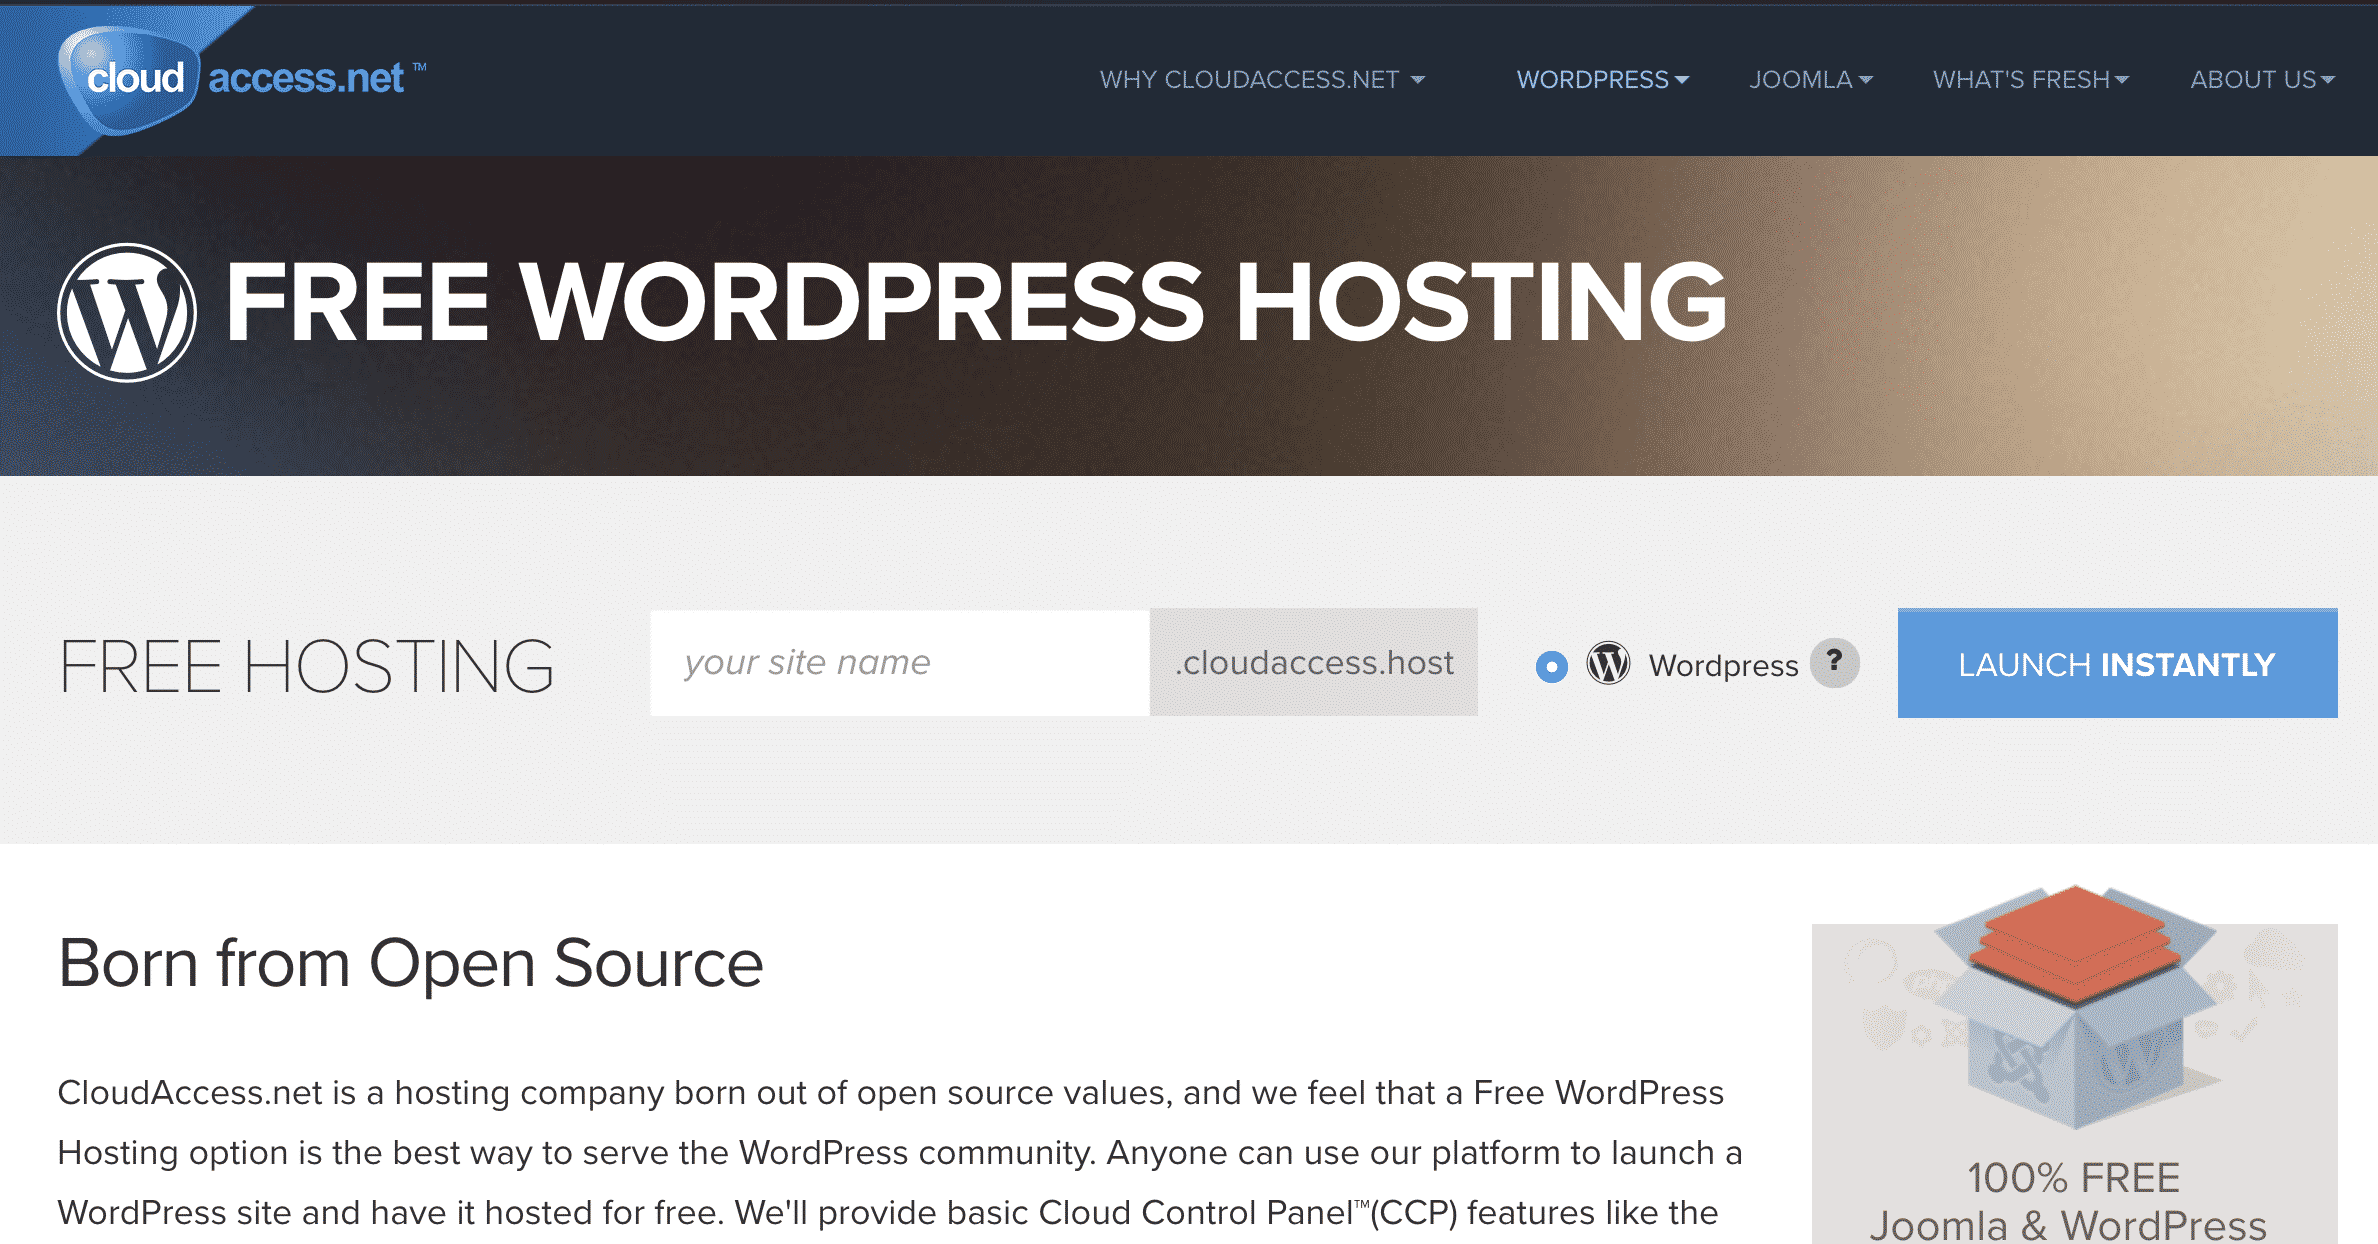 CloudAccess Free WordPress Hosting